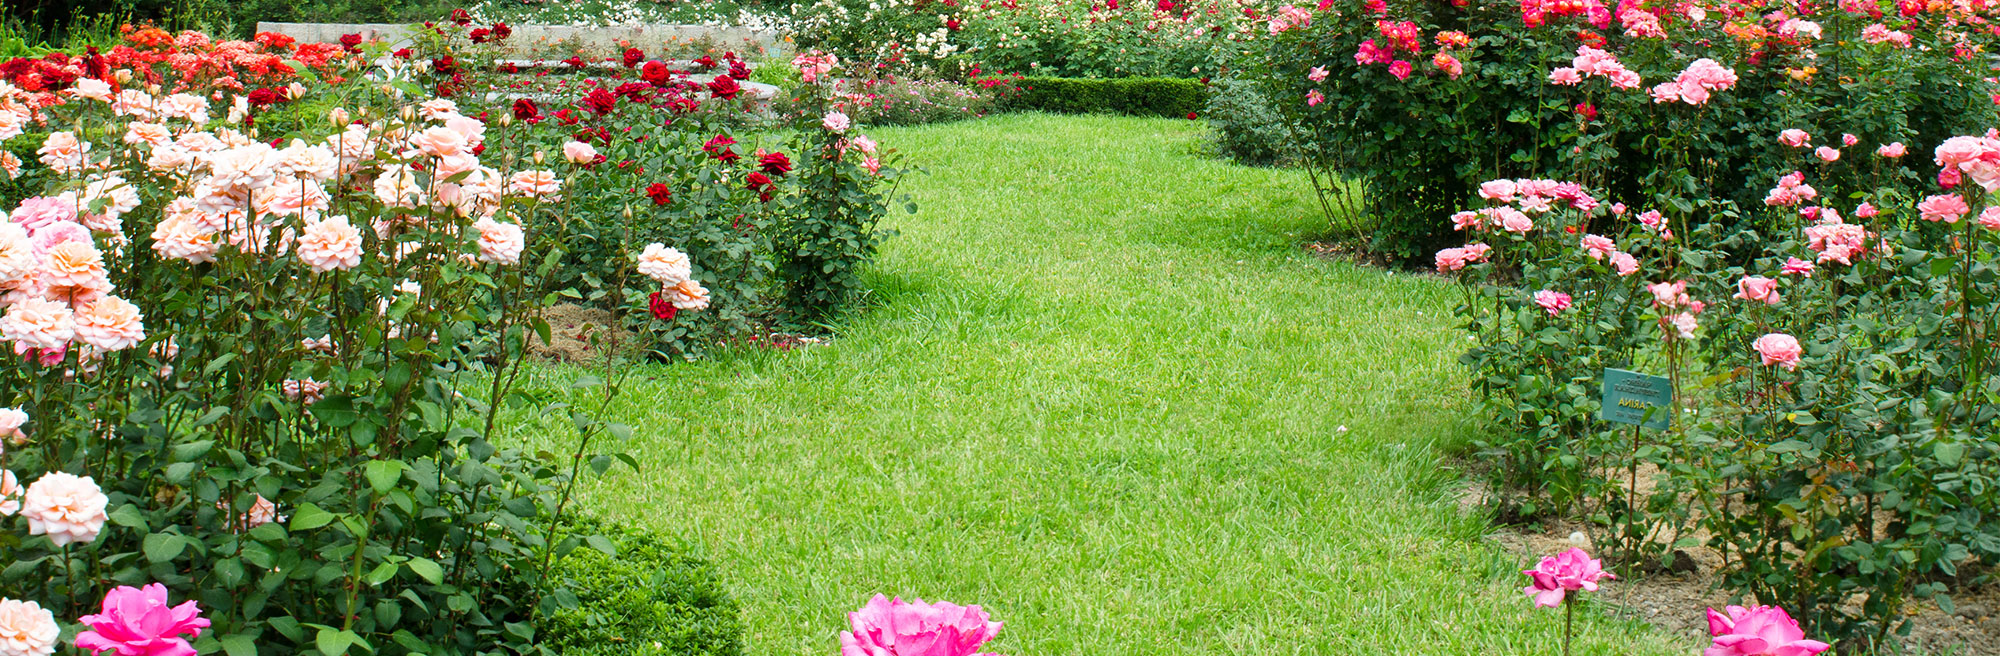 STI Landscaping and beuatiful pink and red flowers